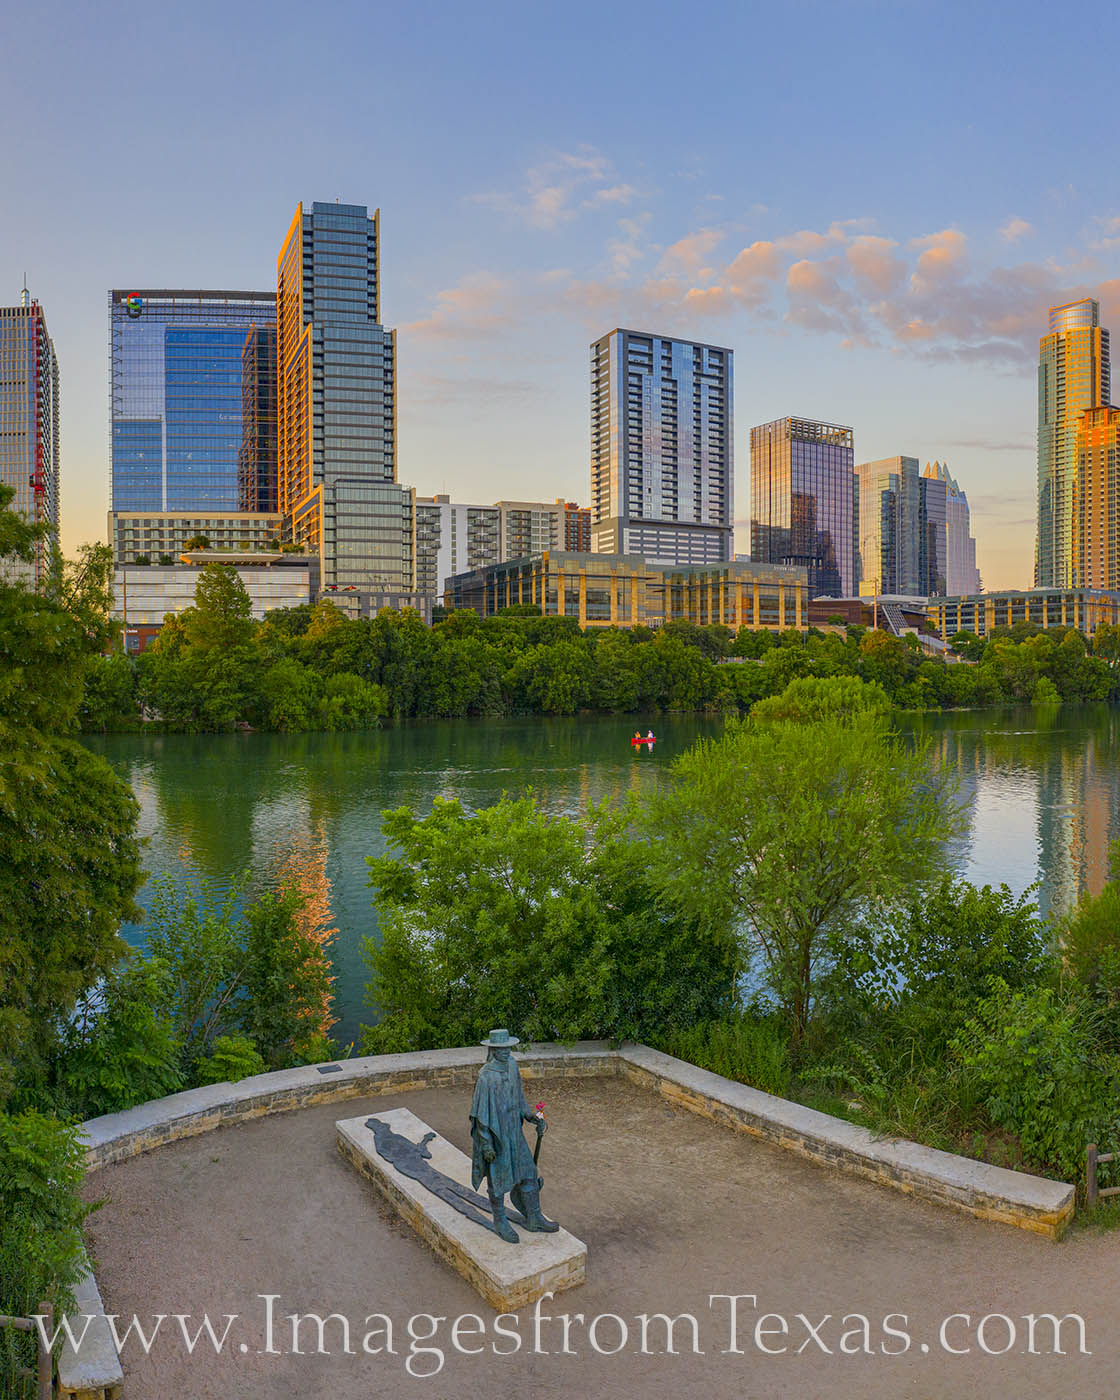 Along the hike and bike path of Town Lake (Ladybird Lake) the statue memorializing Stevie Ray Vaughan stands in the shadown of...